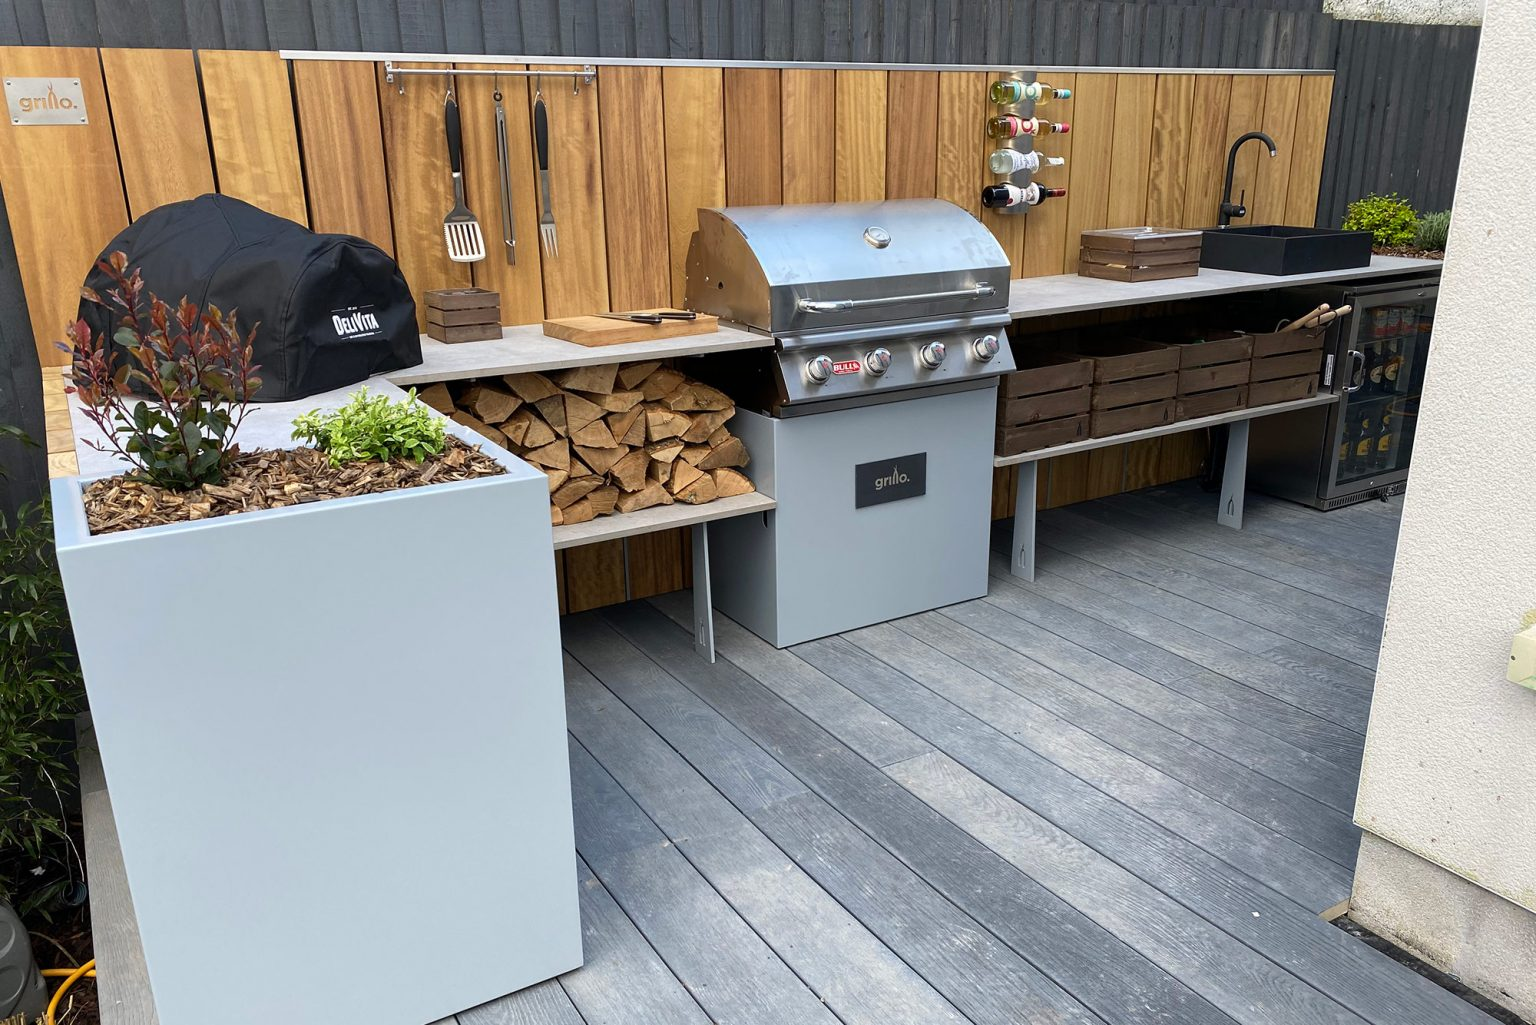 Small L shaped Grillo kitchen with planters, Delivita, Bull BBQ, sink, fridge, logs and storage crates